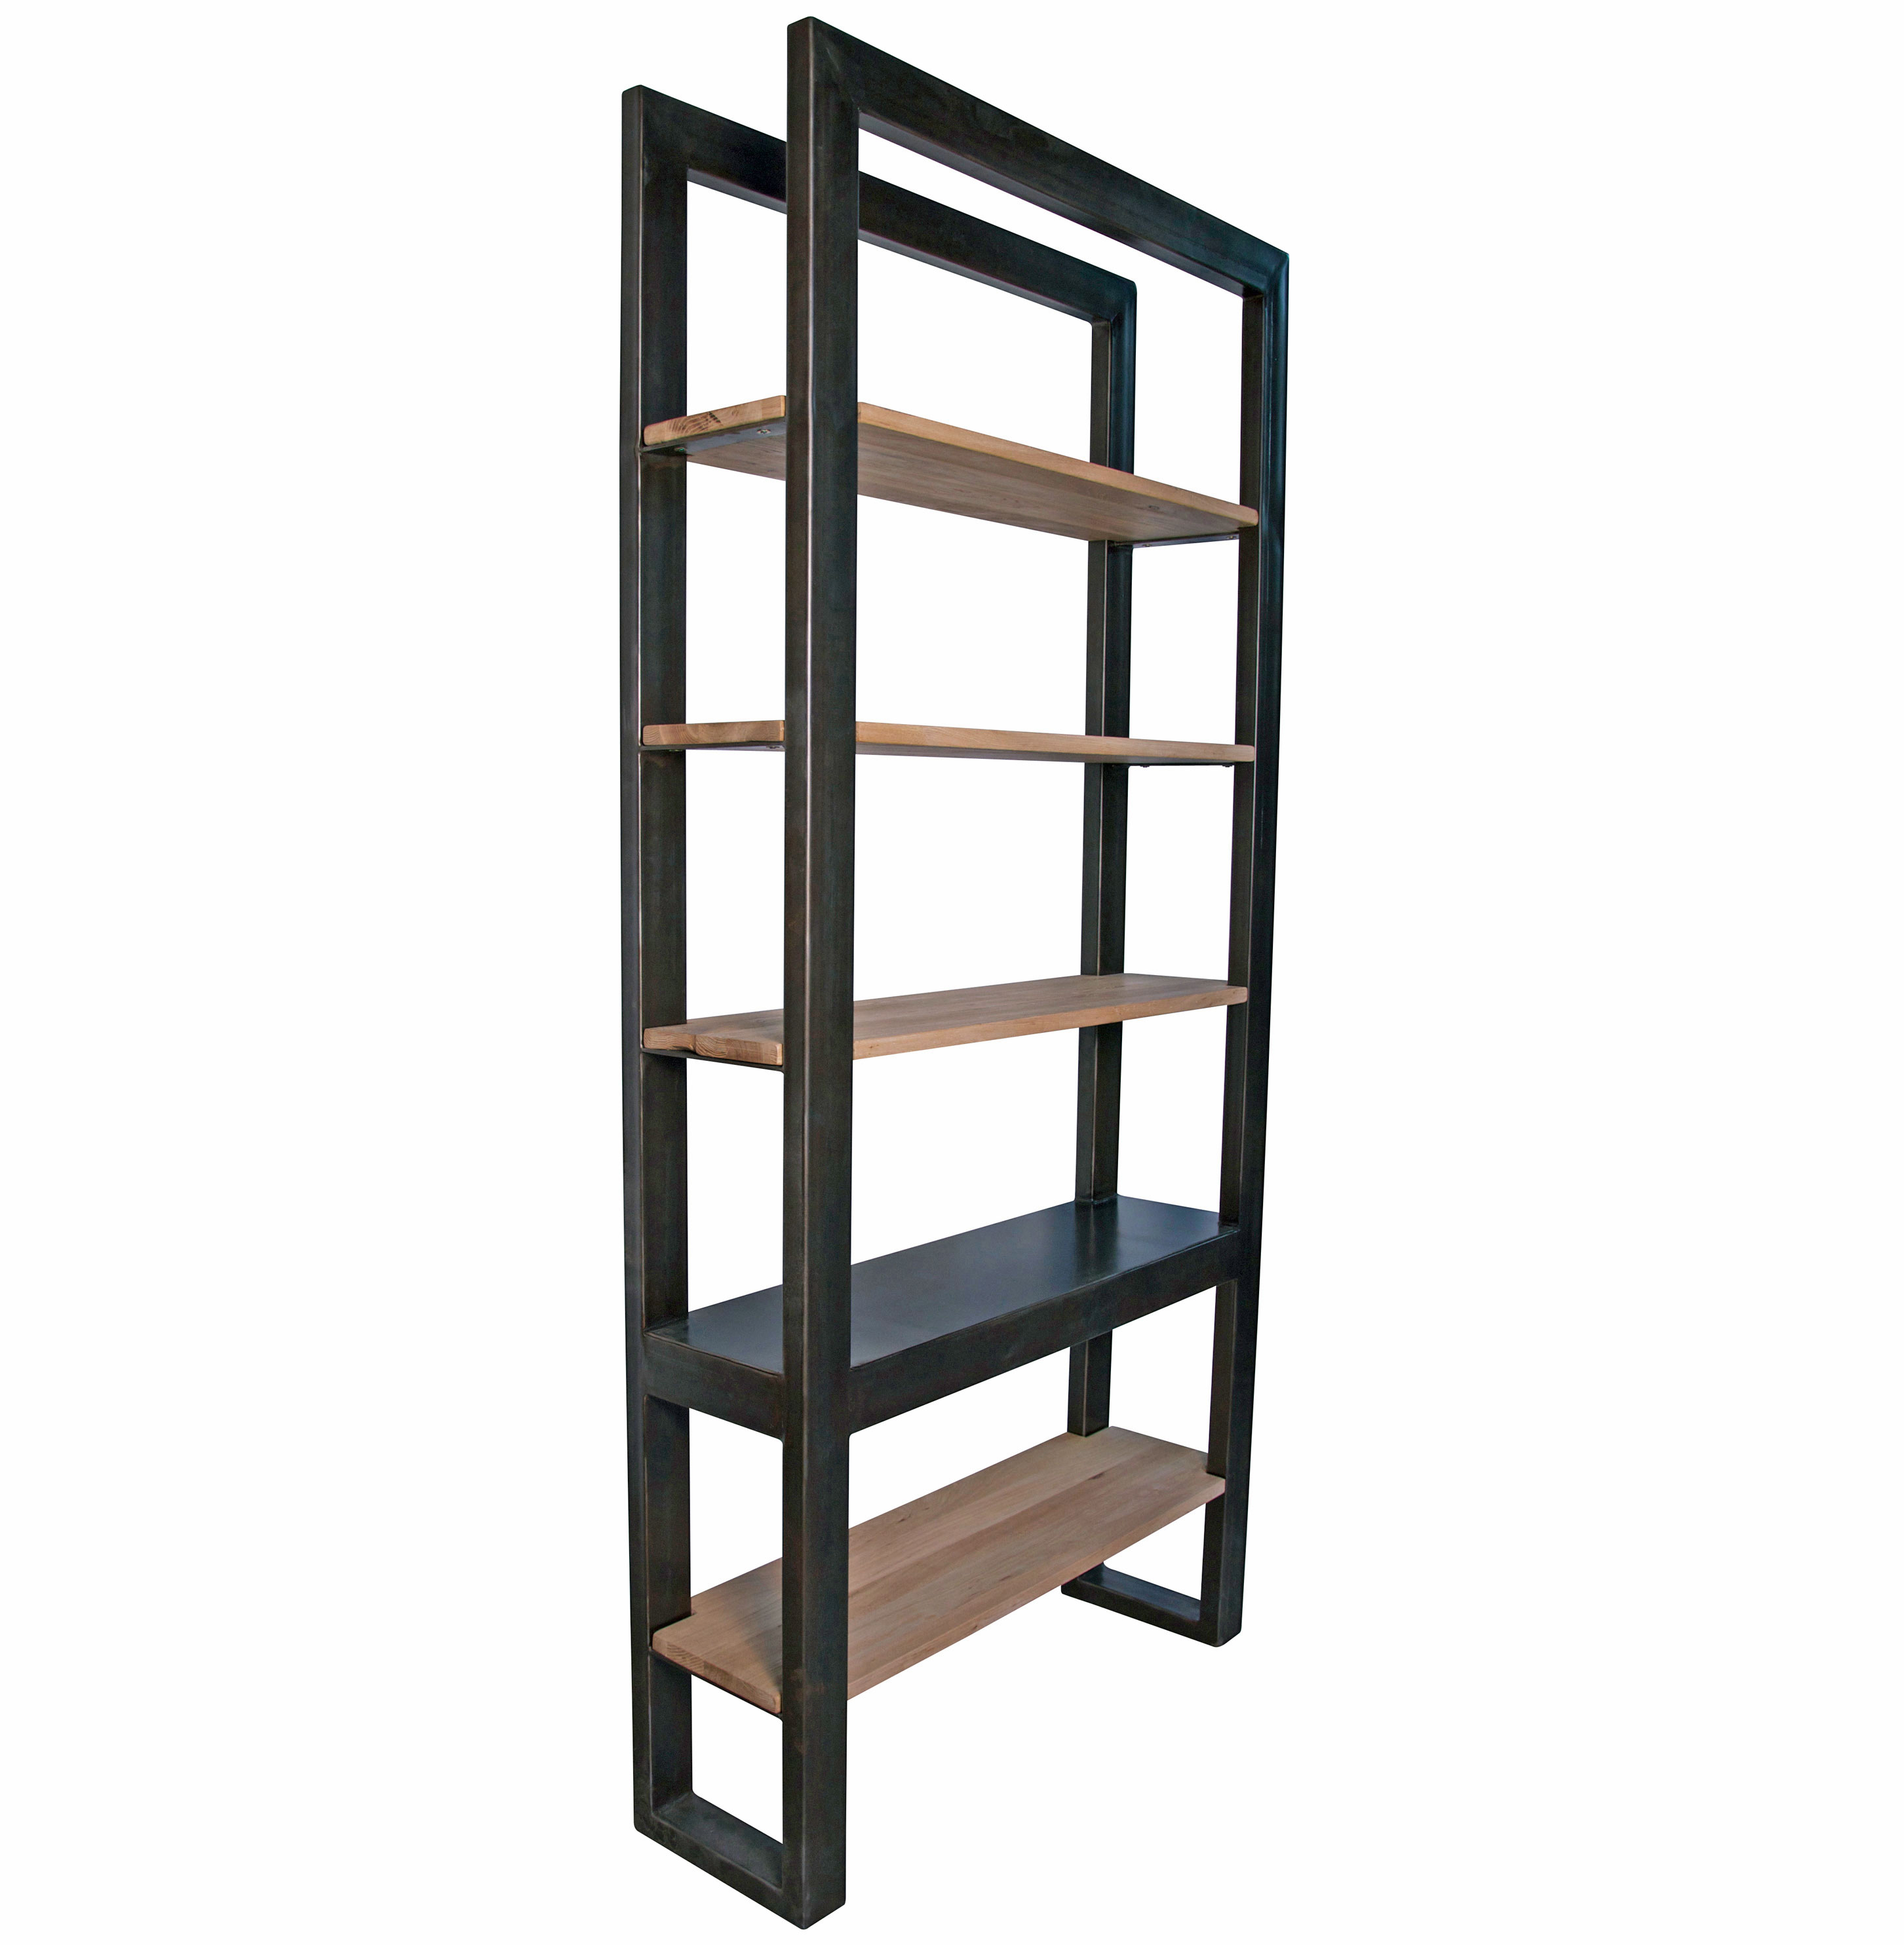 cool shaped design wood furniture accessories bookcases astounding bookcase iron metal x divider narrow pin and bookshelf with classic